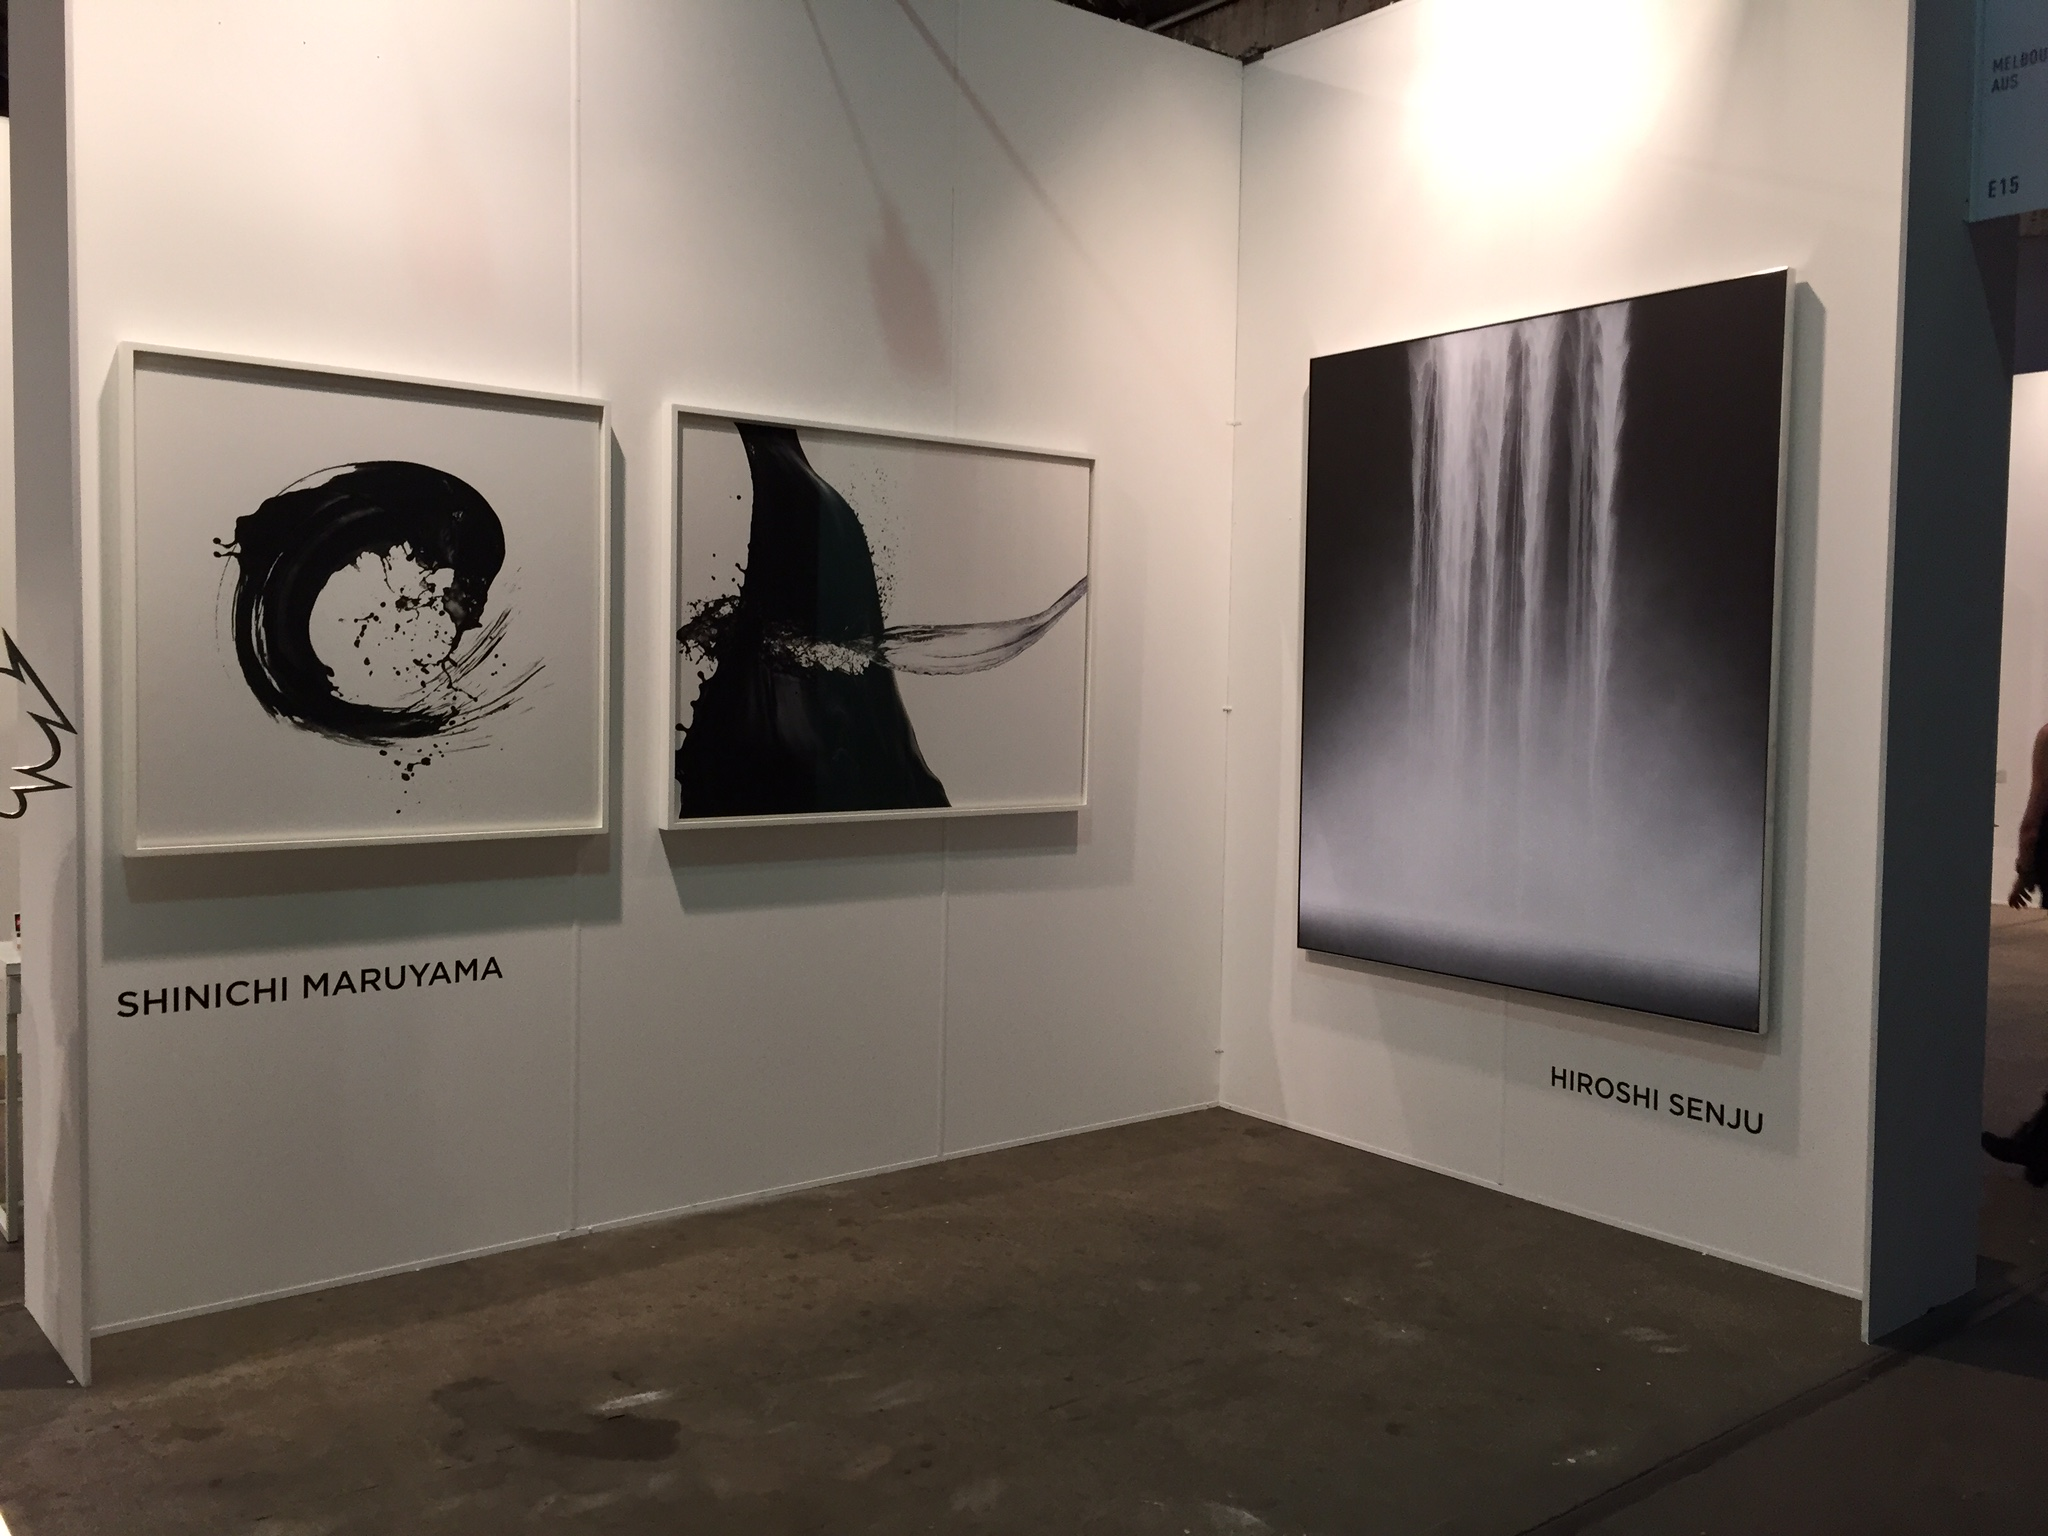 A few works from the Lesley Kehoe Gallery